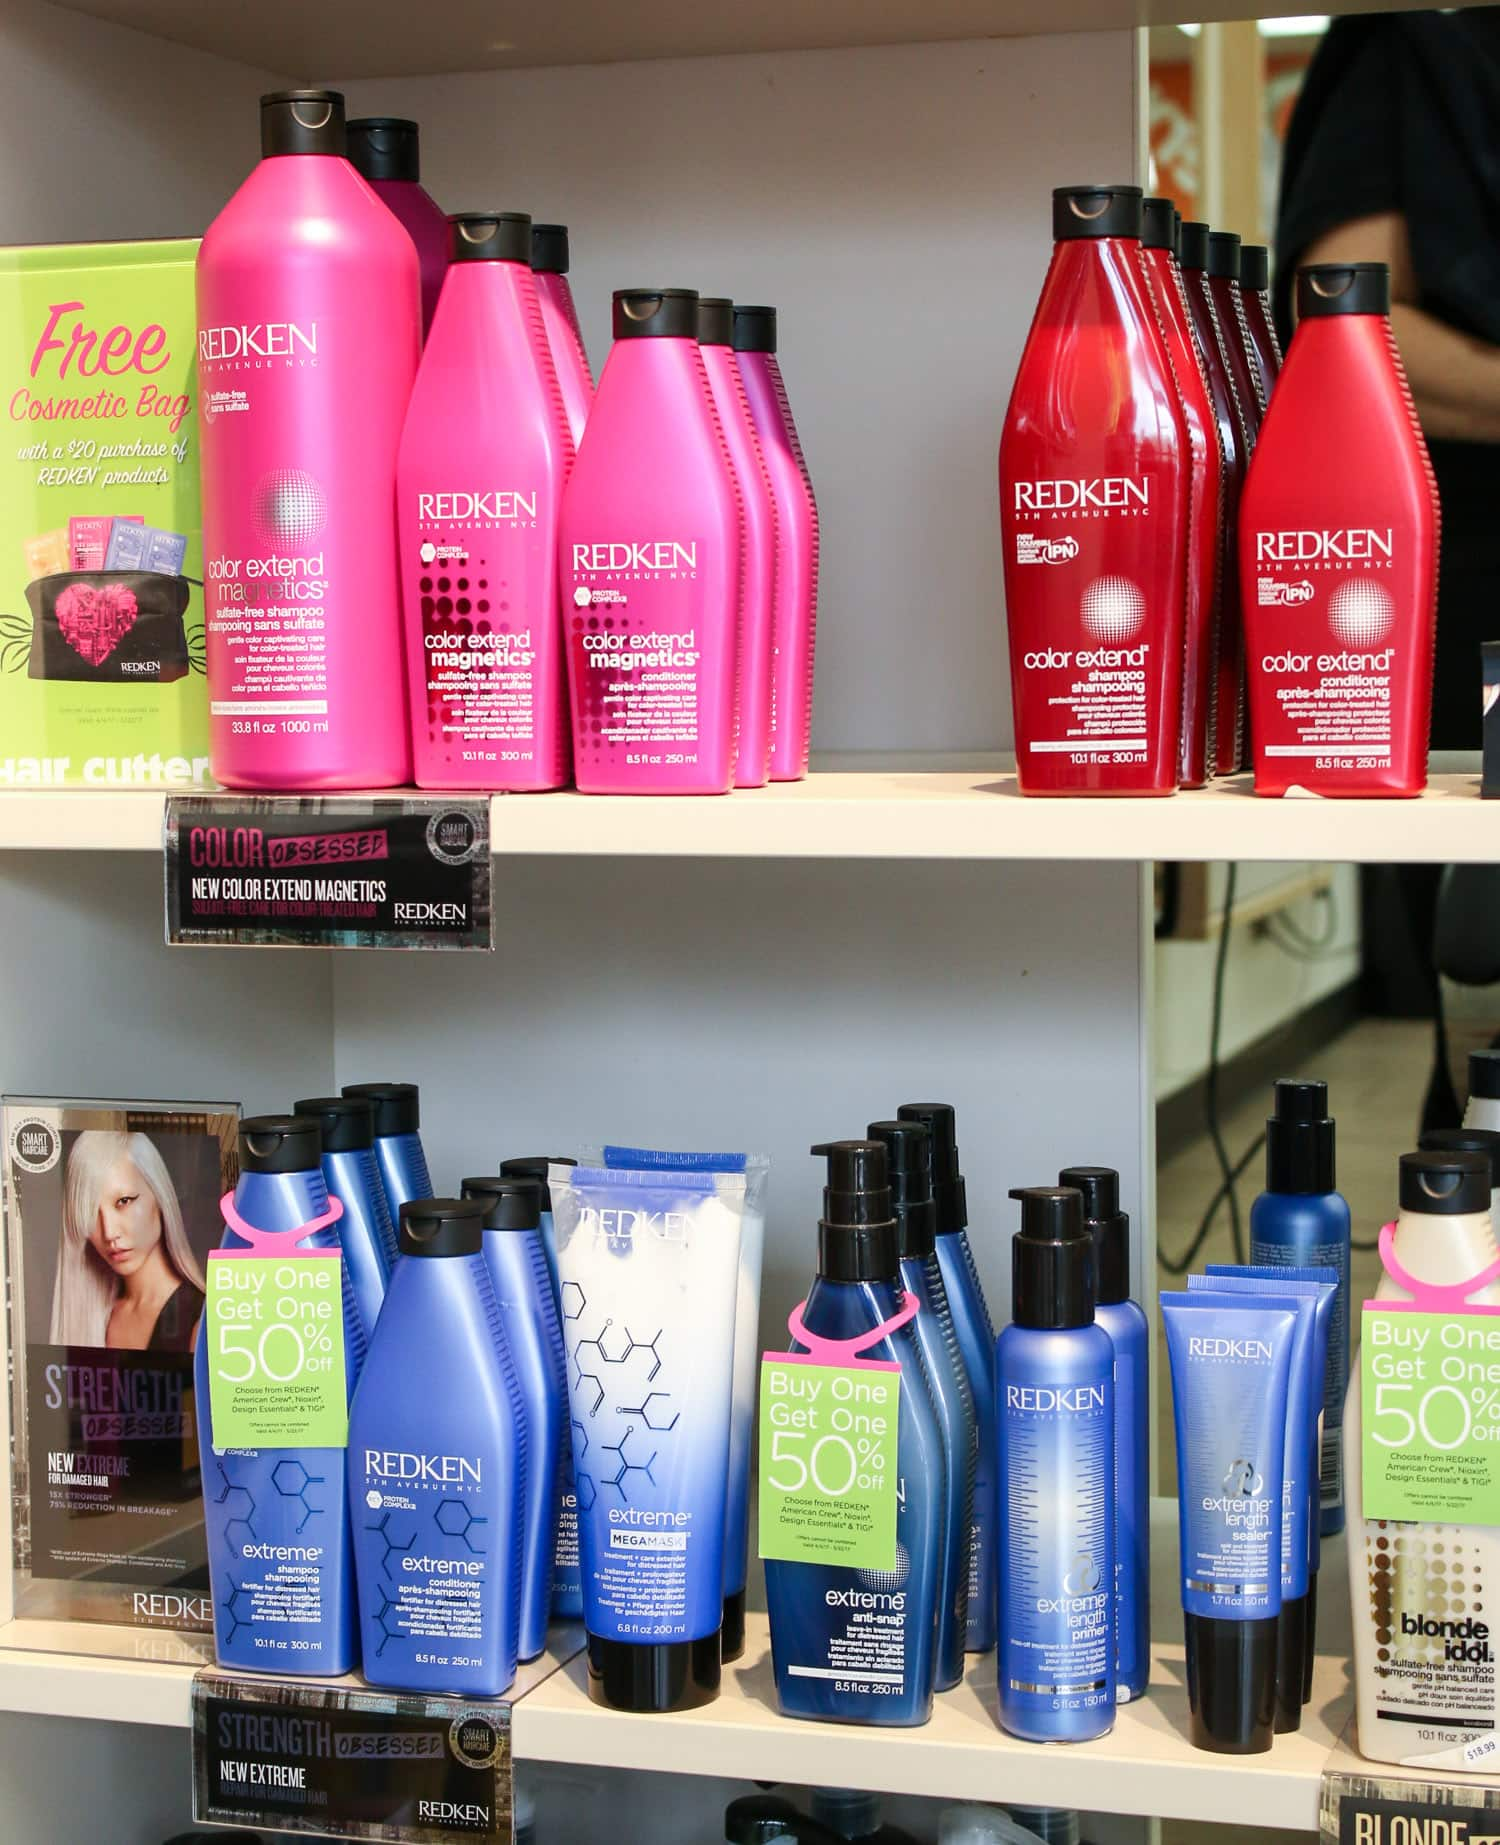 Redken shampoo and conditioner at Hair Cuttery salon